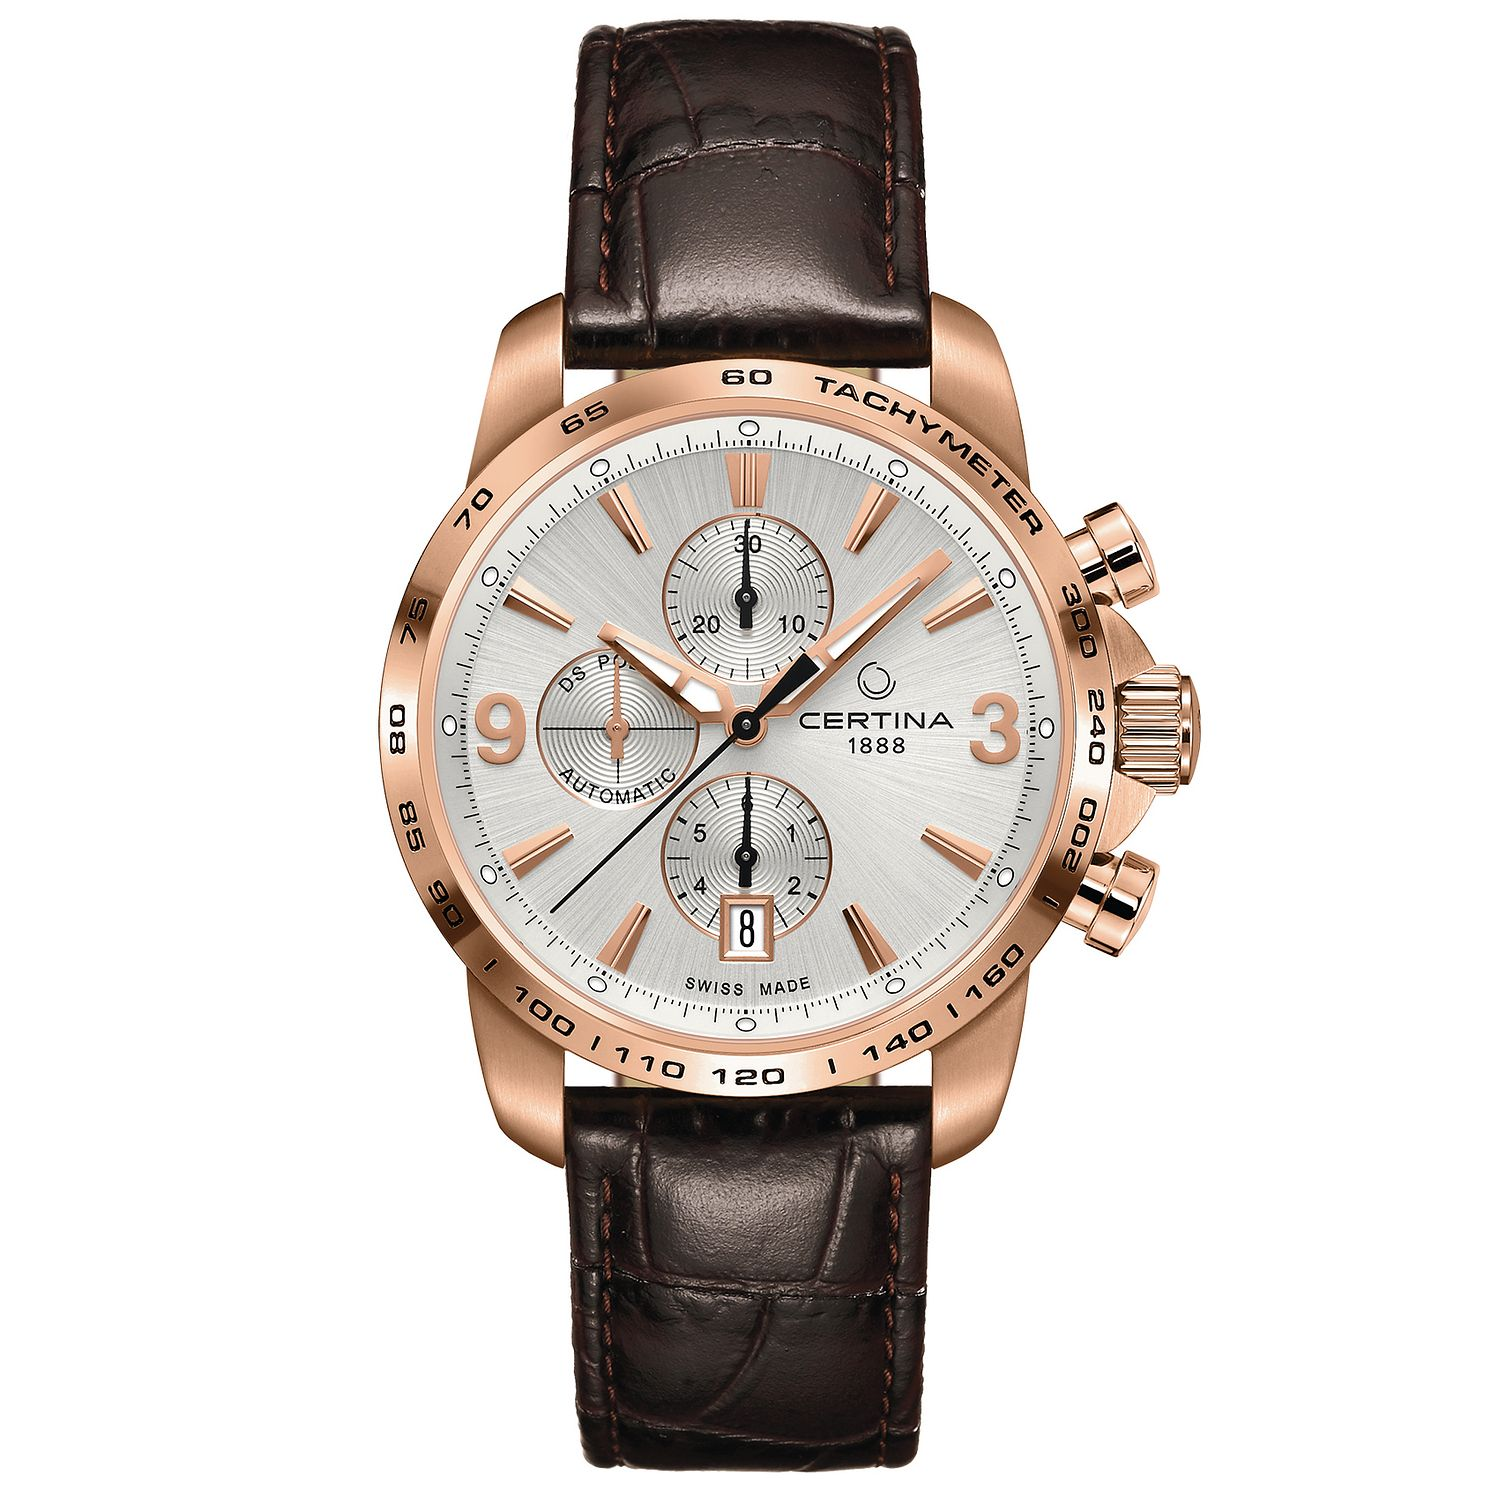 Certina Men's Rose Gold Plated Strap Watch - Product number 4910656